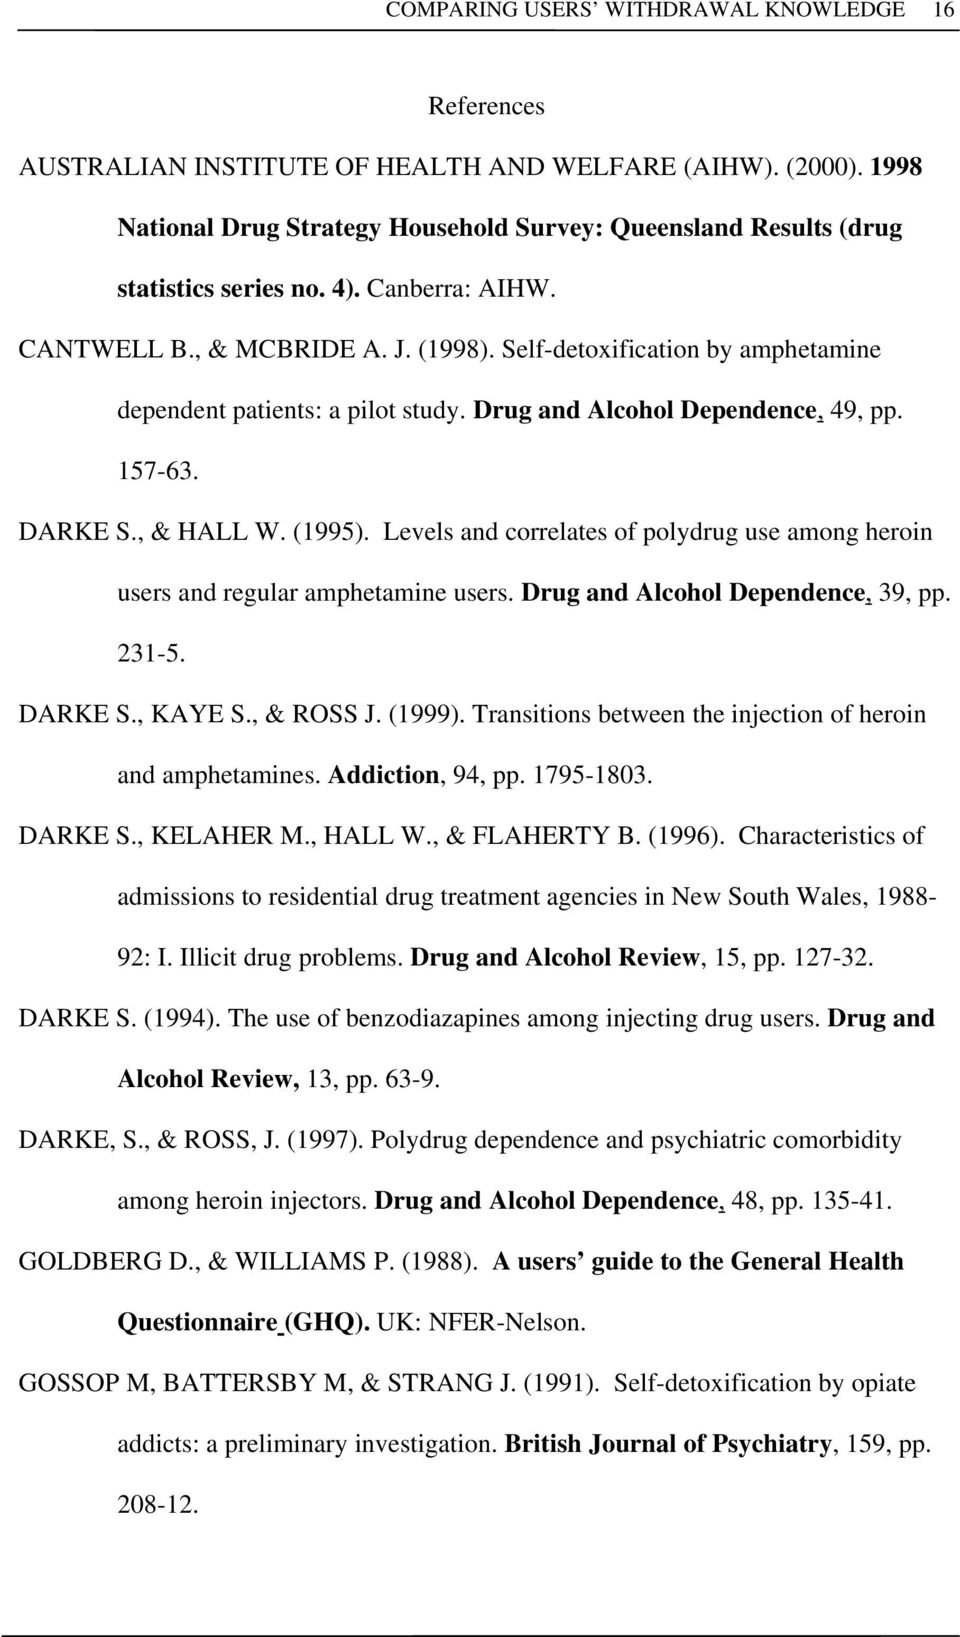 Self-detoxification by amphetamine dependent patients: a pilot study. Drug and Alcohol Dependence, 49, pp. 157-63. DARKE S., & HALL W. (1995).